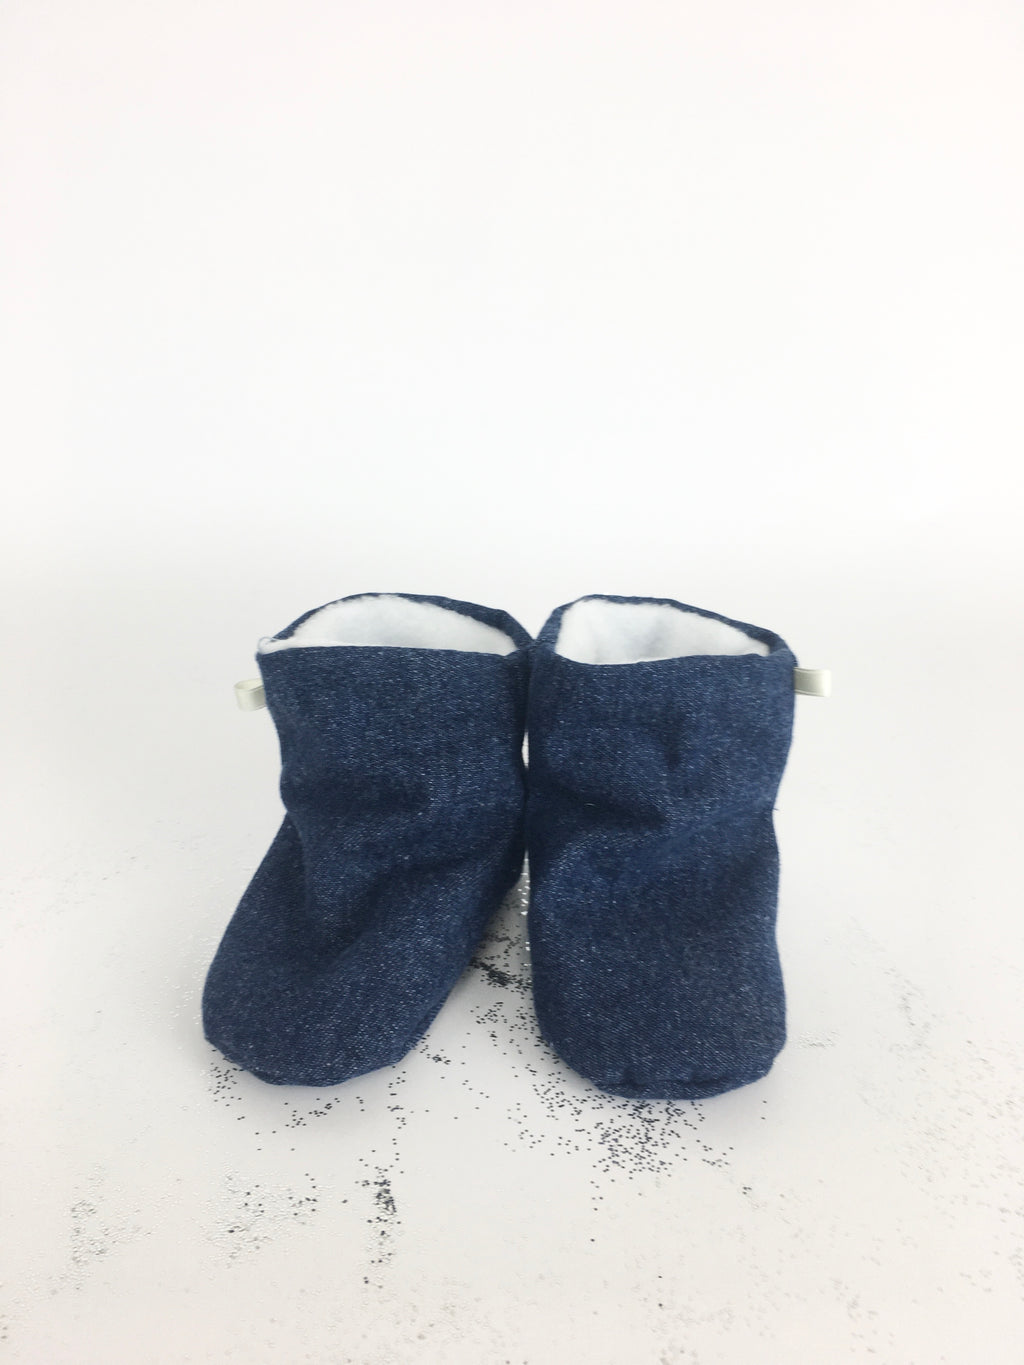 BABY SHOES * BLUE DENIM